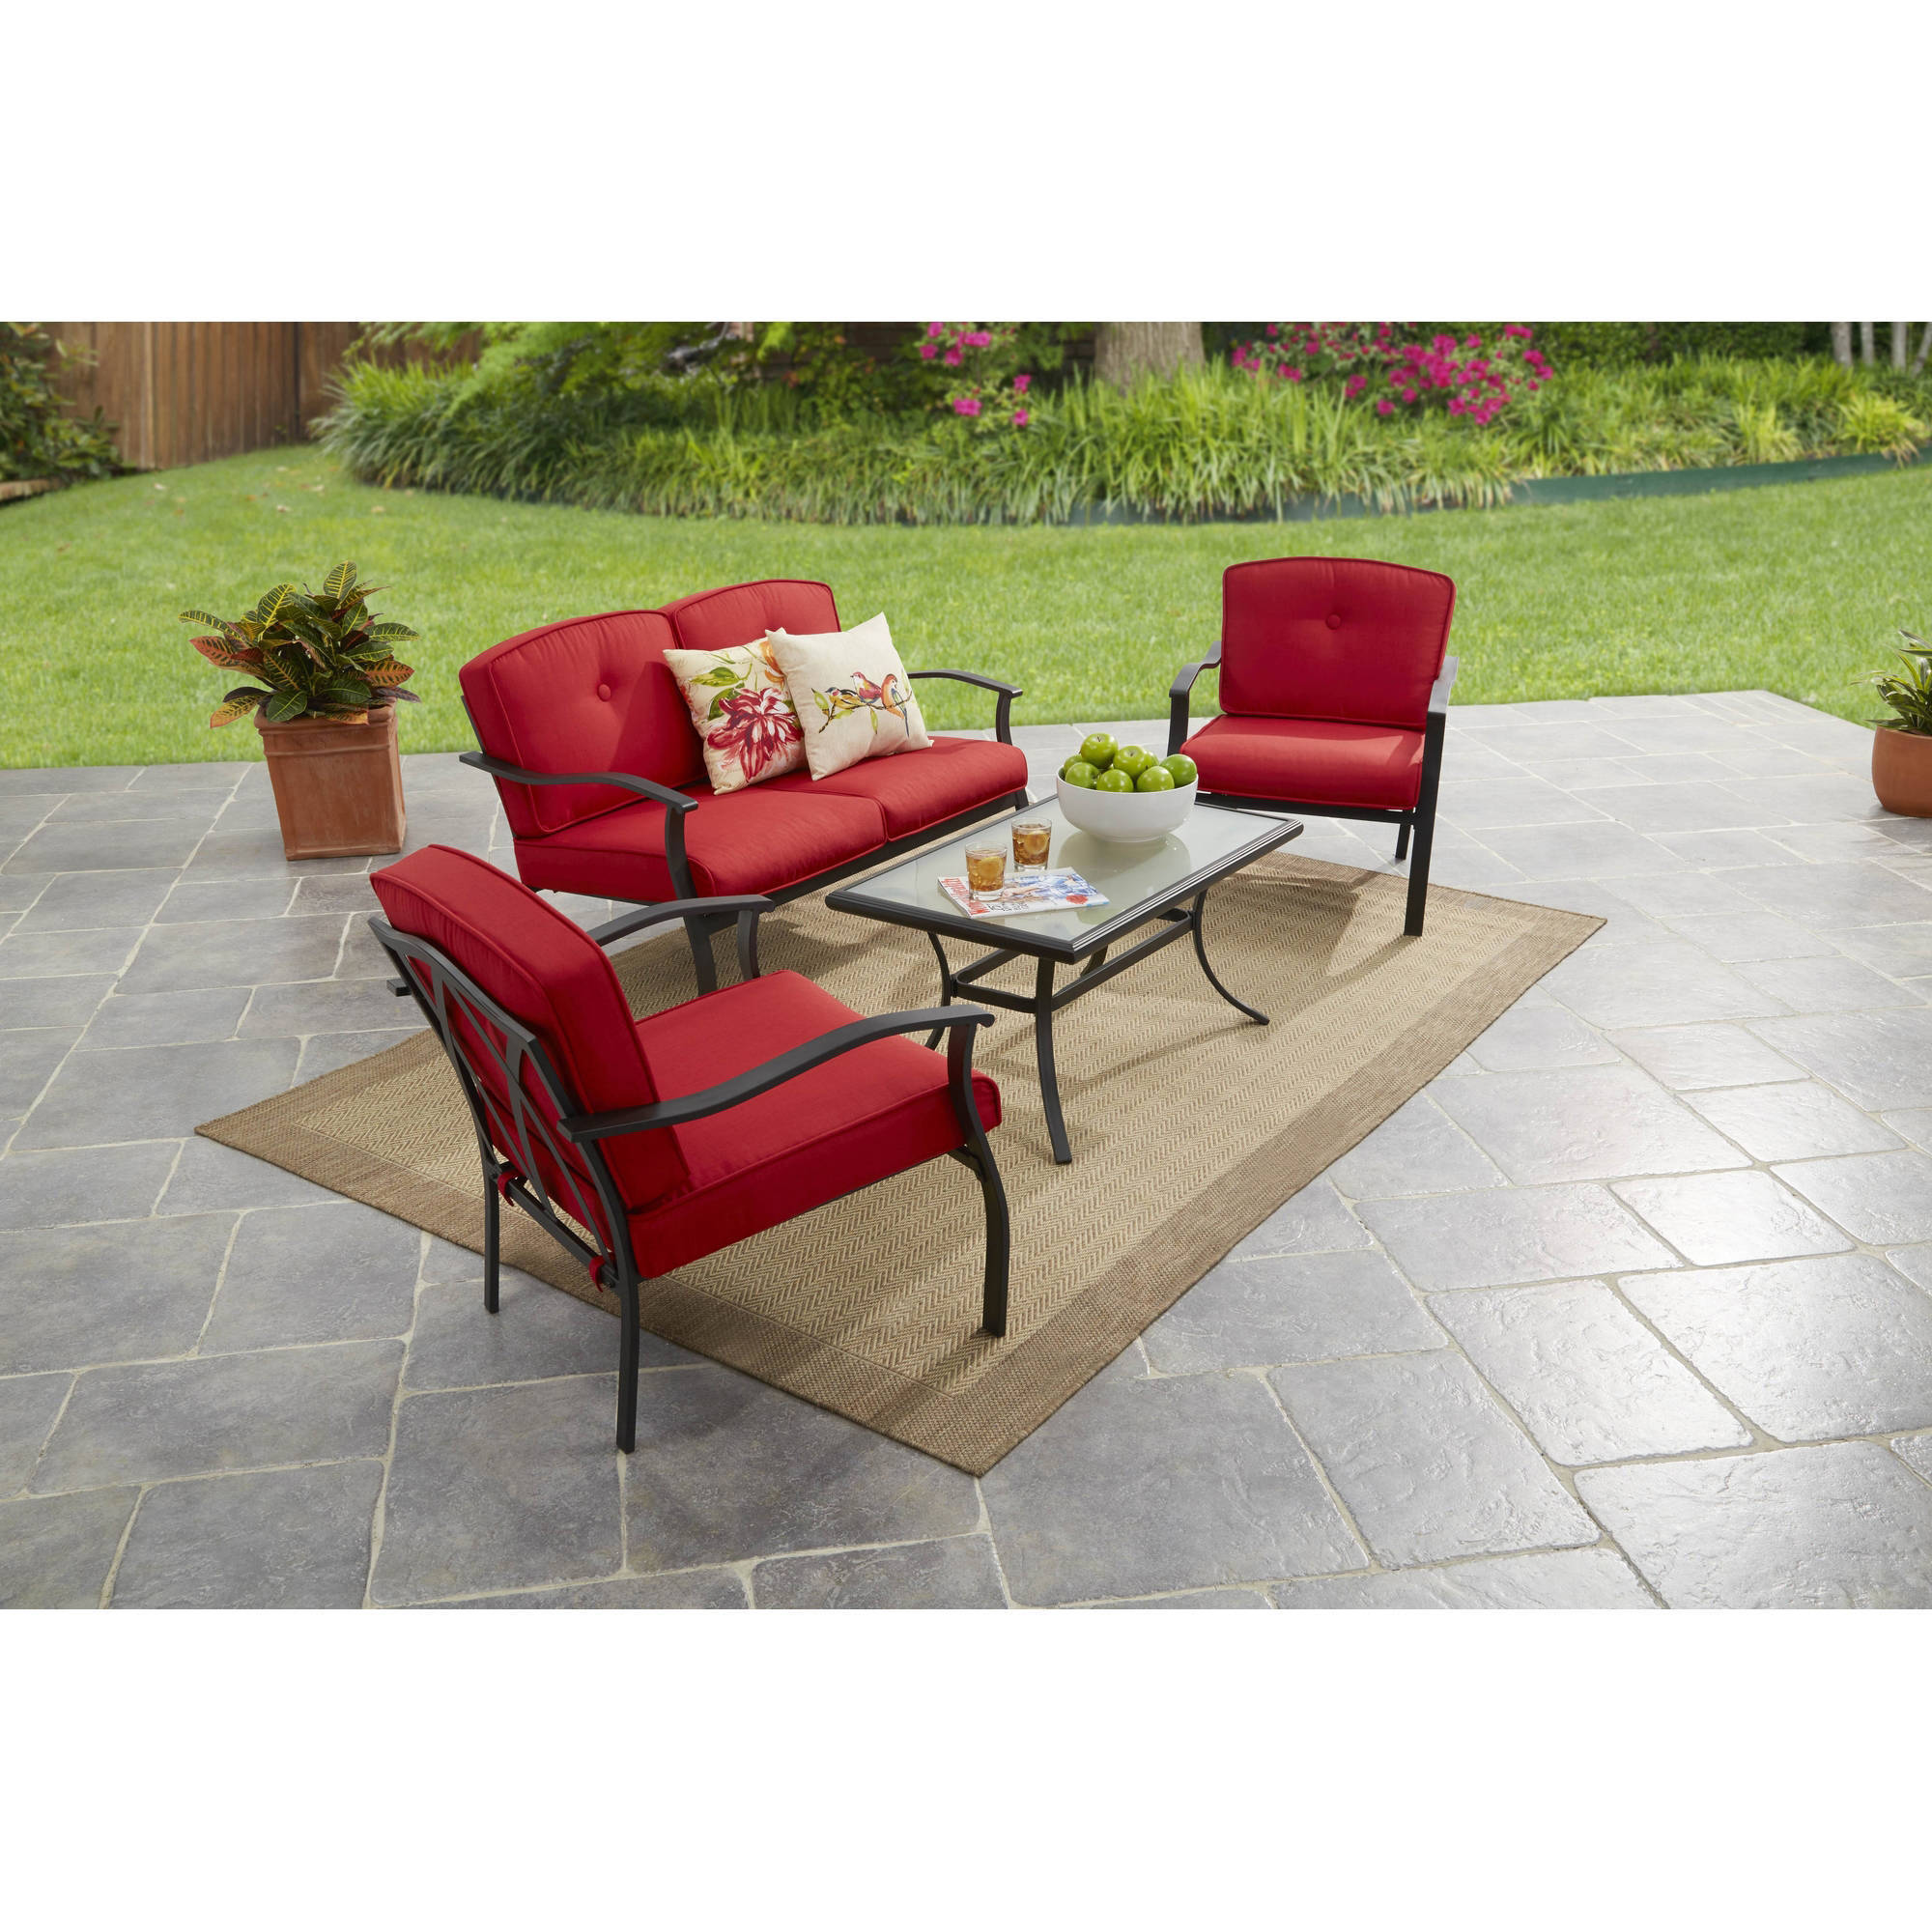 Alabama Furniture Market Coupon Patio Furniture Deals Patio Furniture Lowes Discount Patio